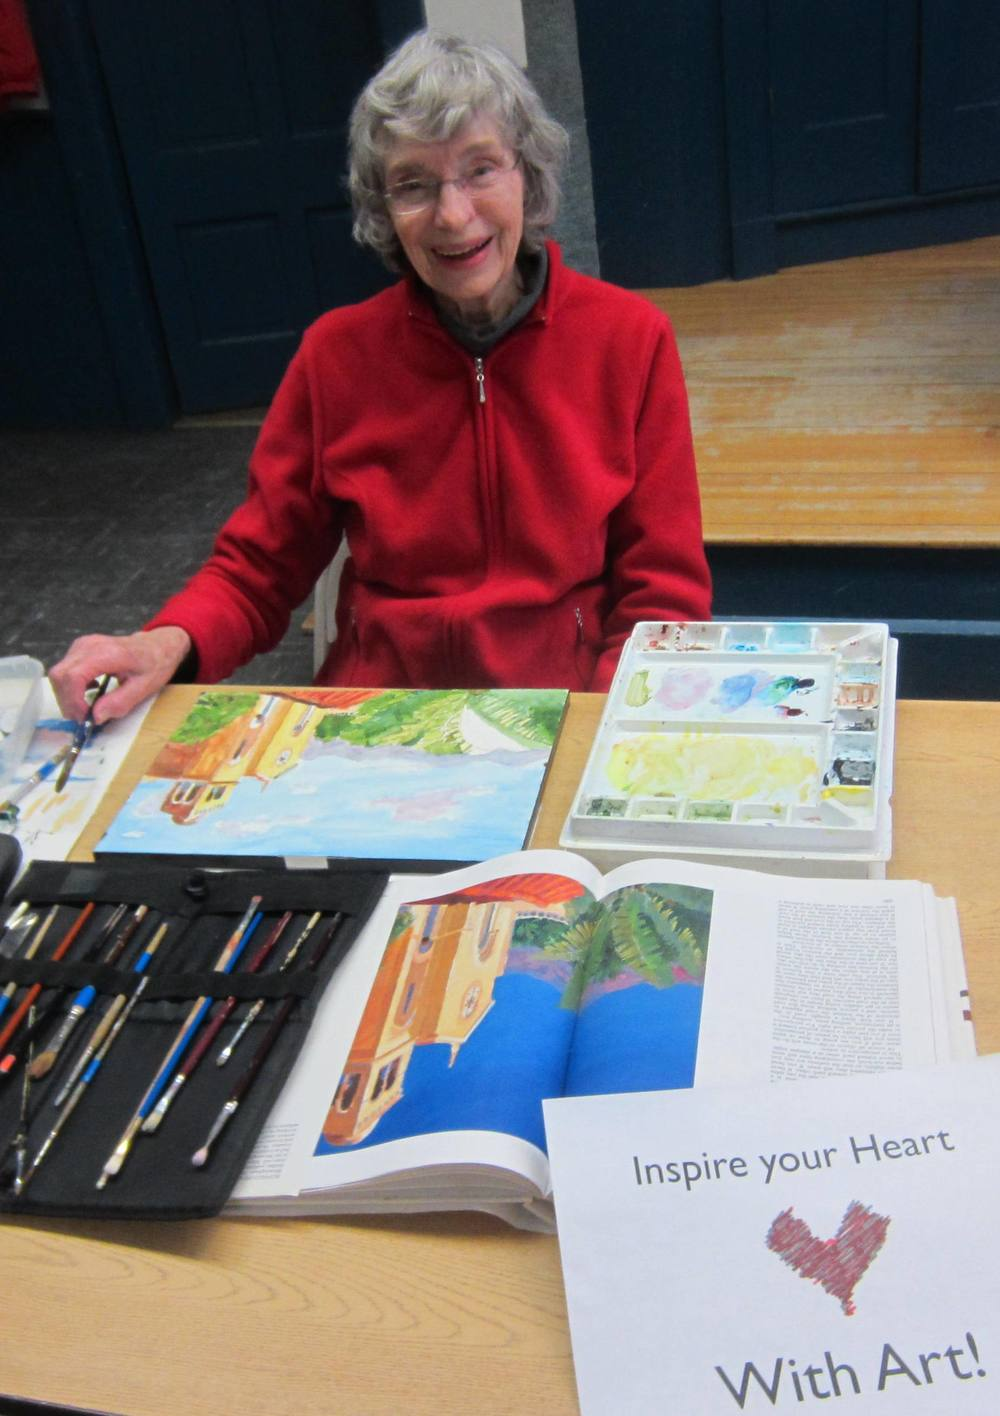 Art Group inspire your heart with art 001.jpg